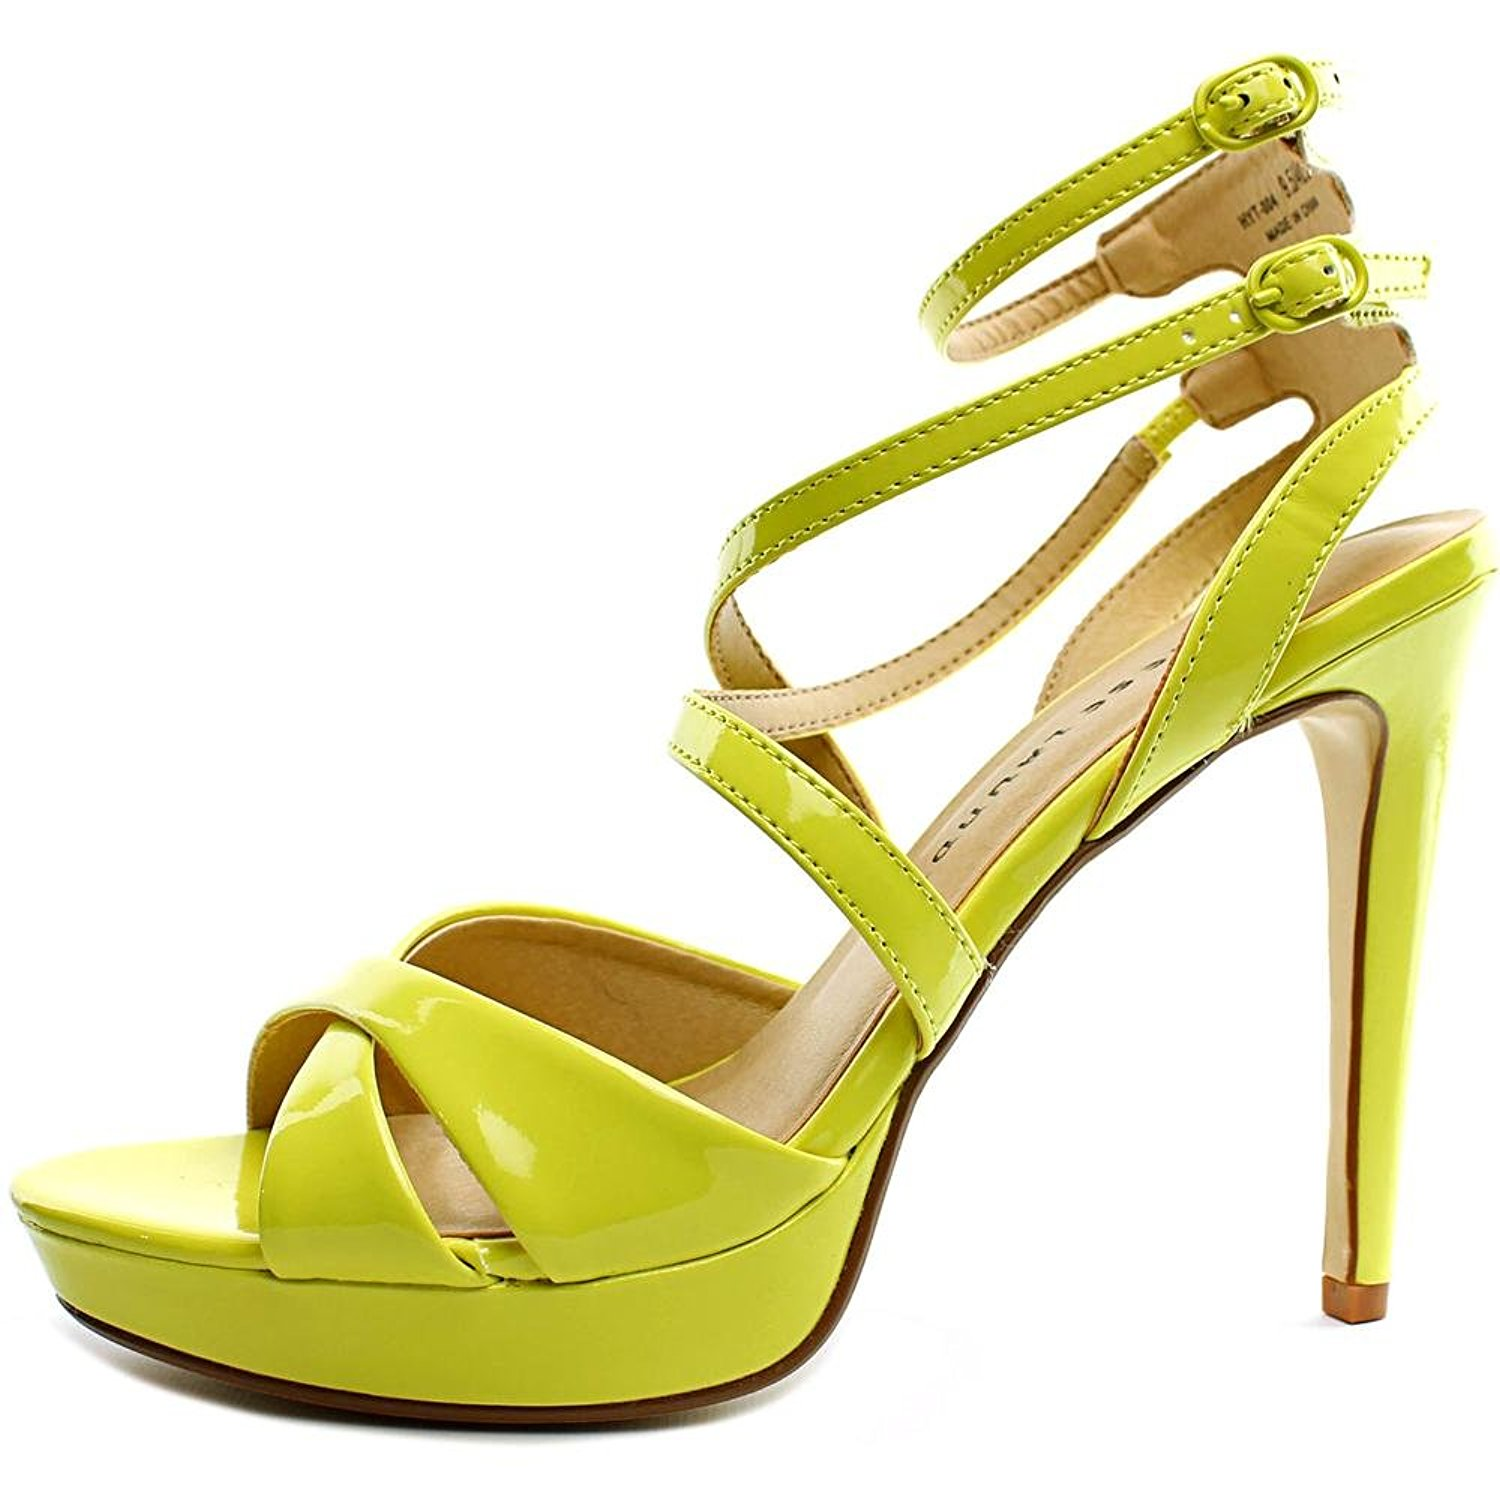 Chinese Laundry Womens HIghlight Open Toe Ankle Strap Platform Lemon Size 9.0